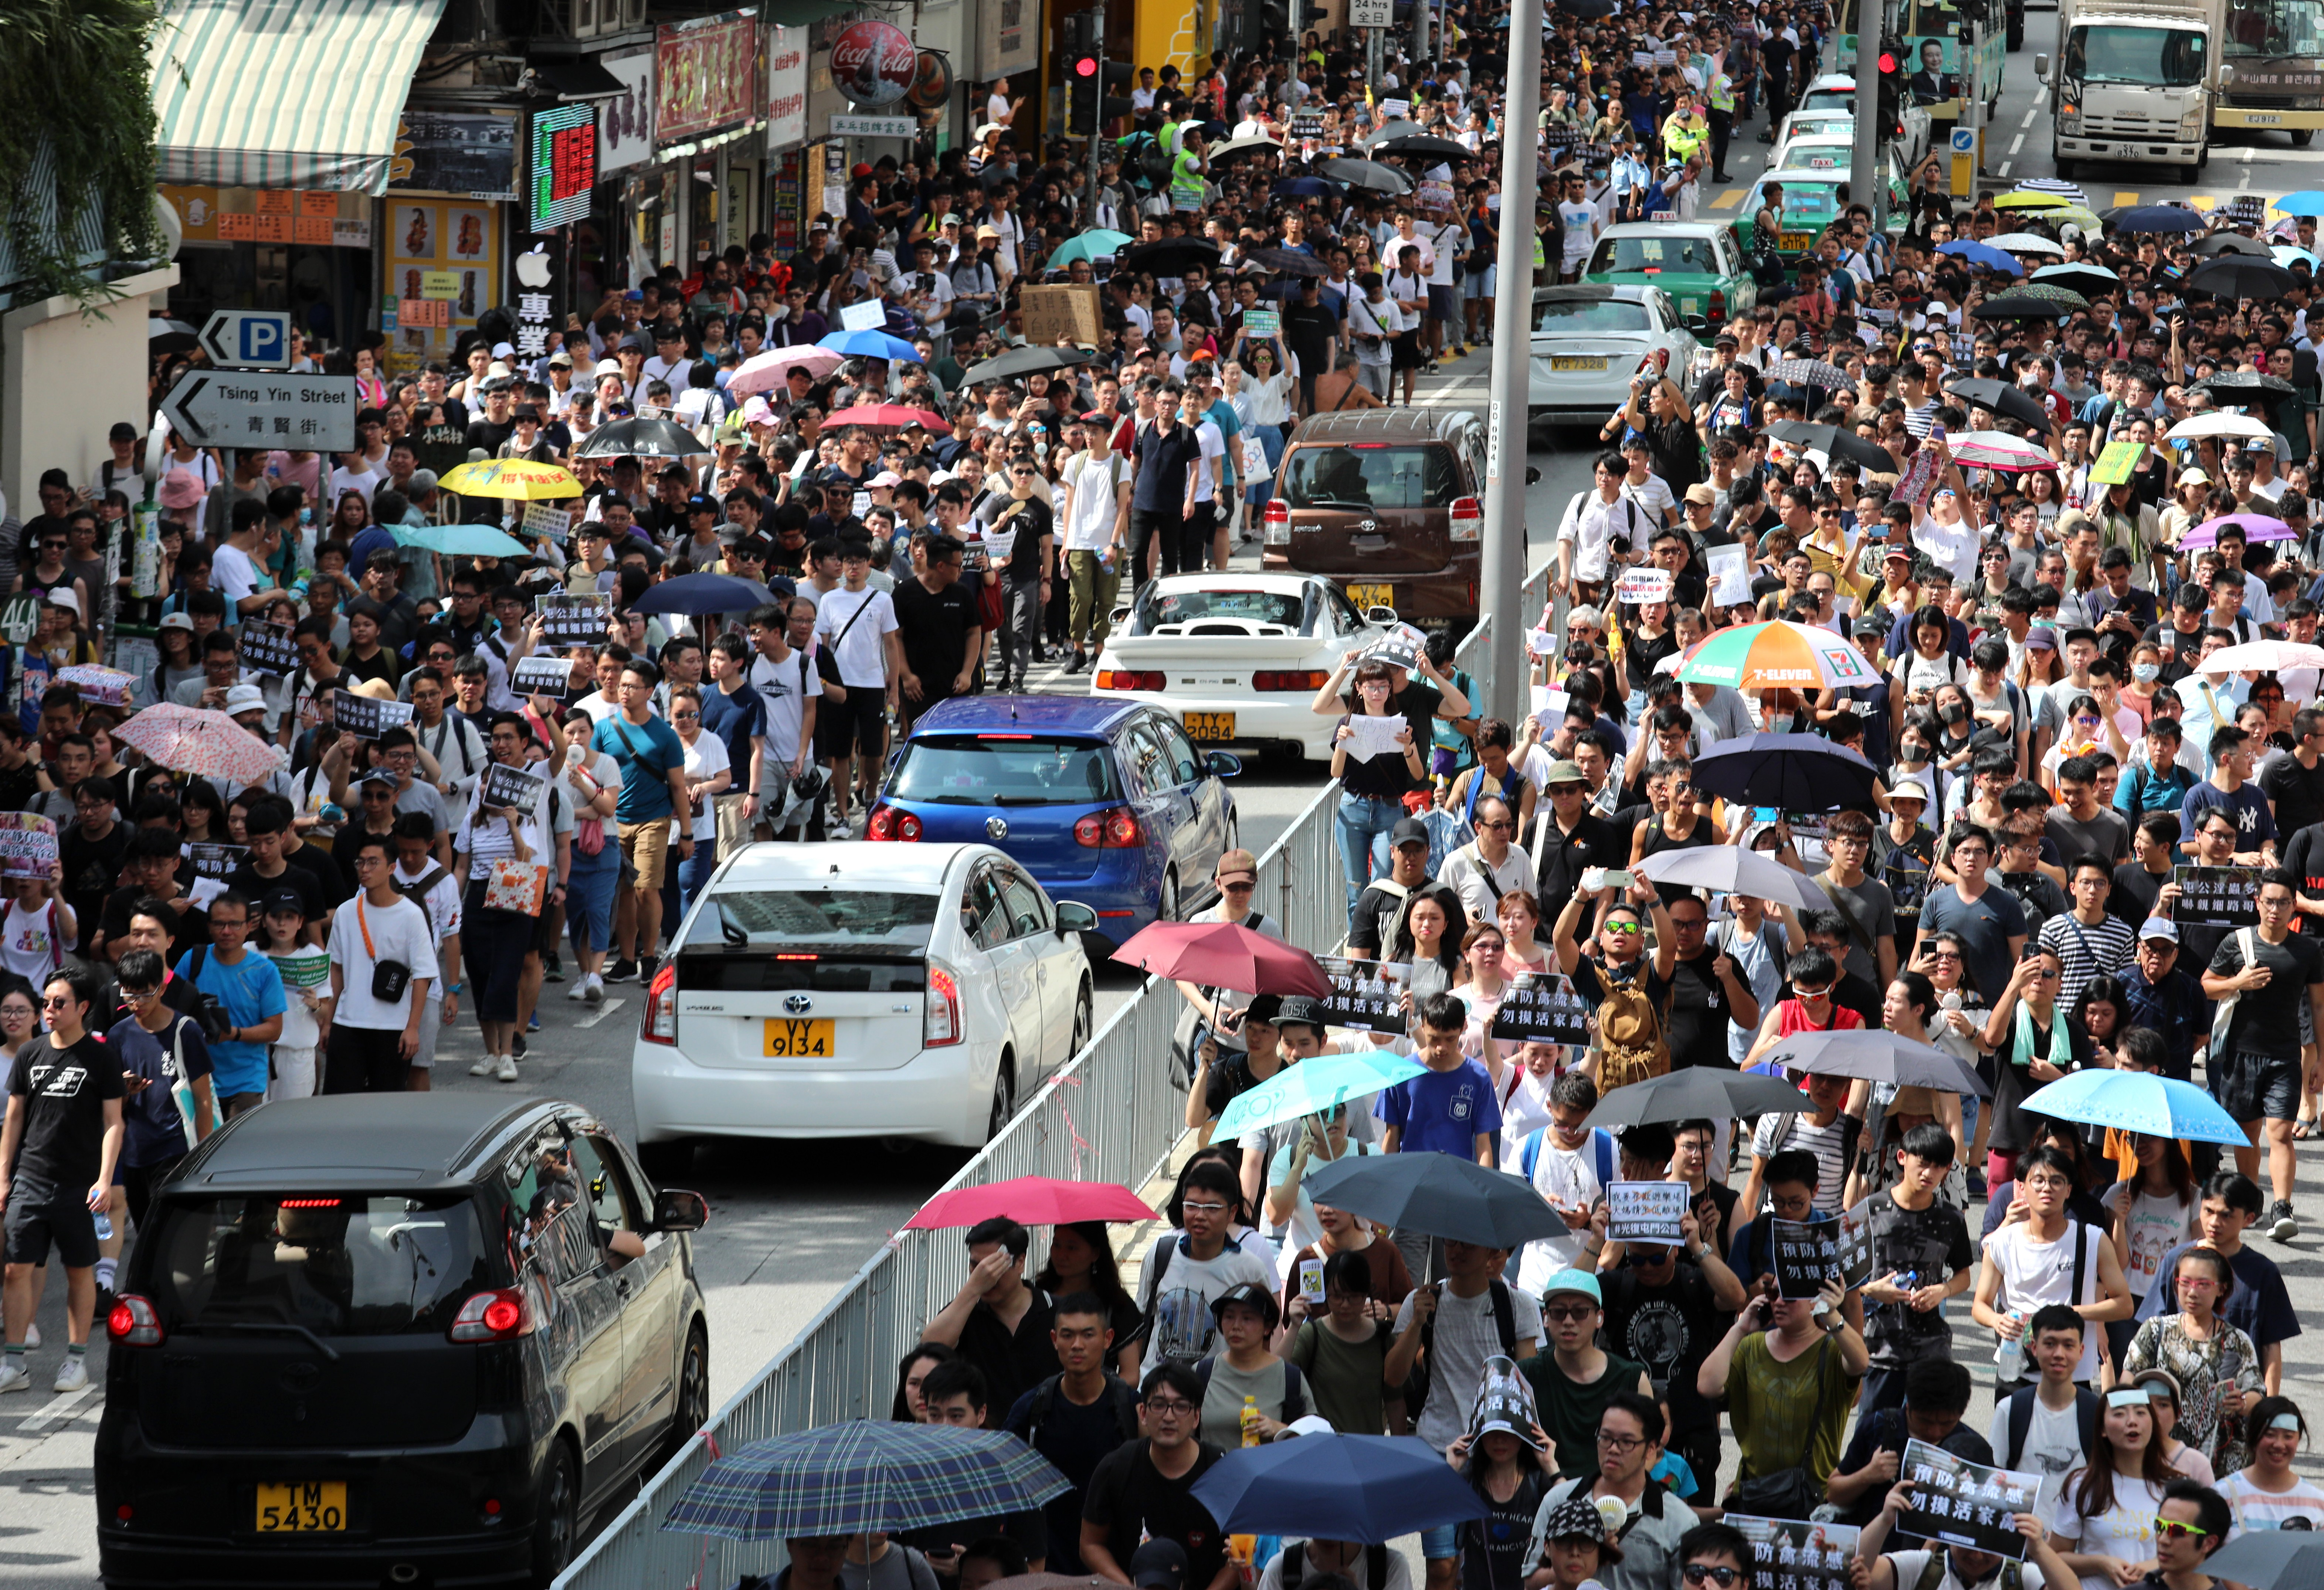 Large crowd gathers in Hong Kong to protest against noisy middle